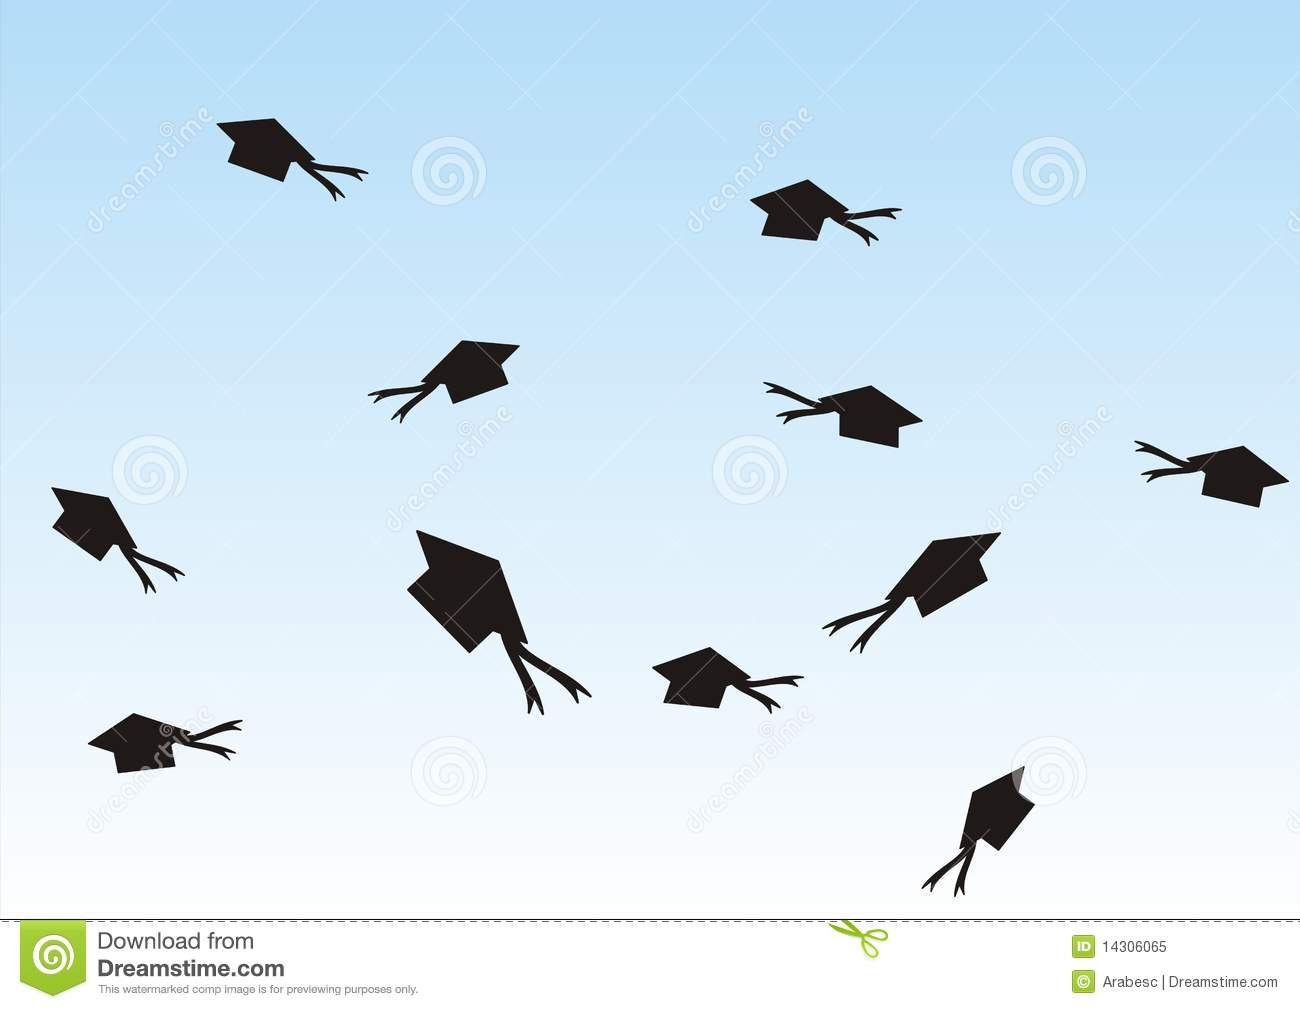 Graduation Hats In The Air Royalty Free Stock Photo ...